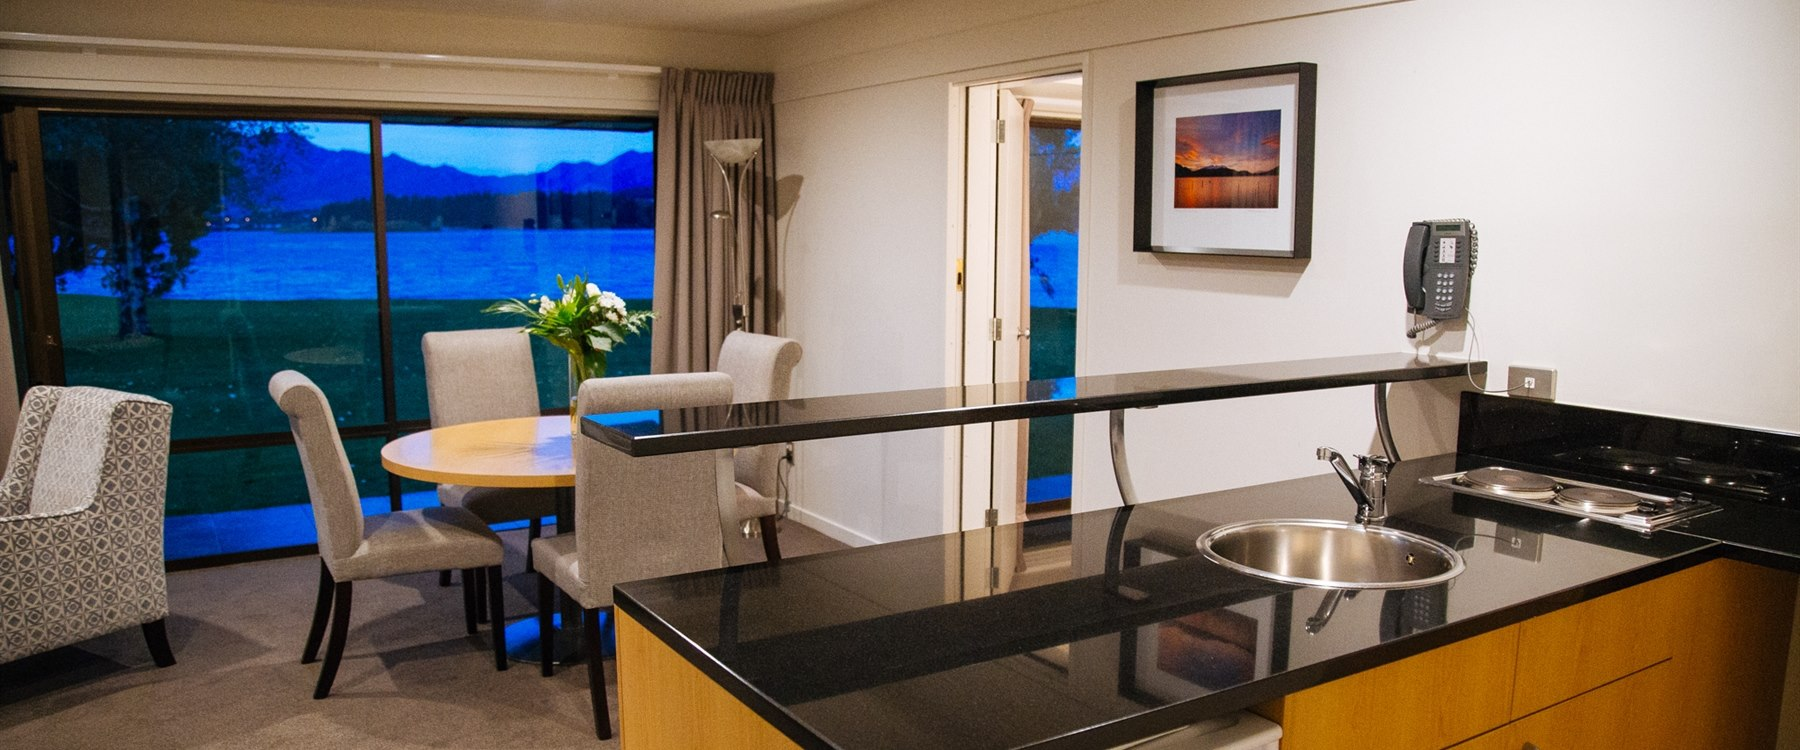 Suite Kitchenette with dining area at Edgewater